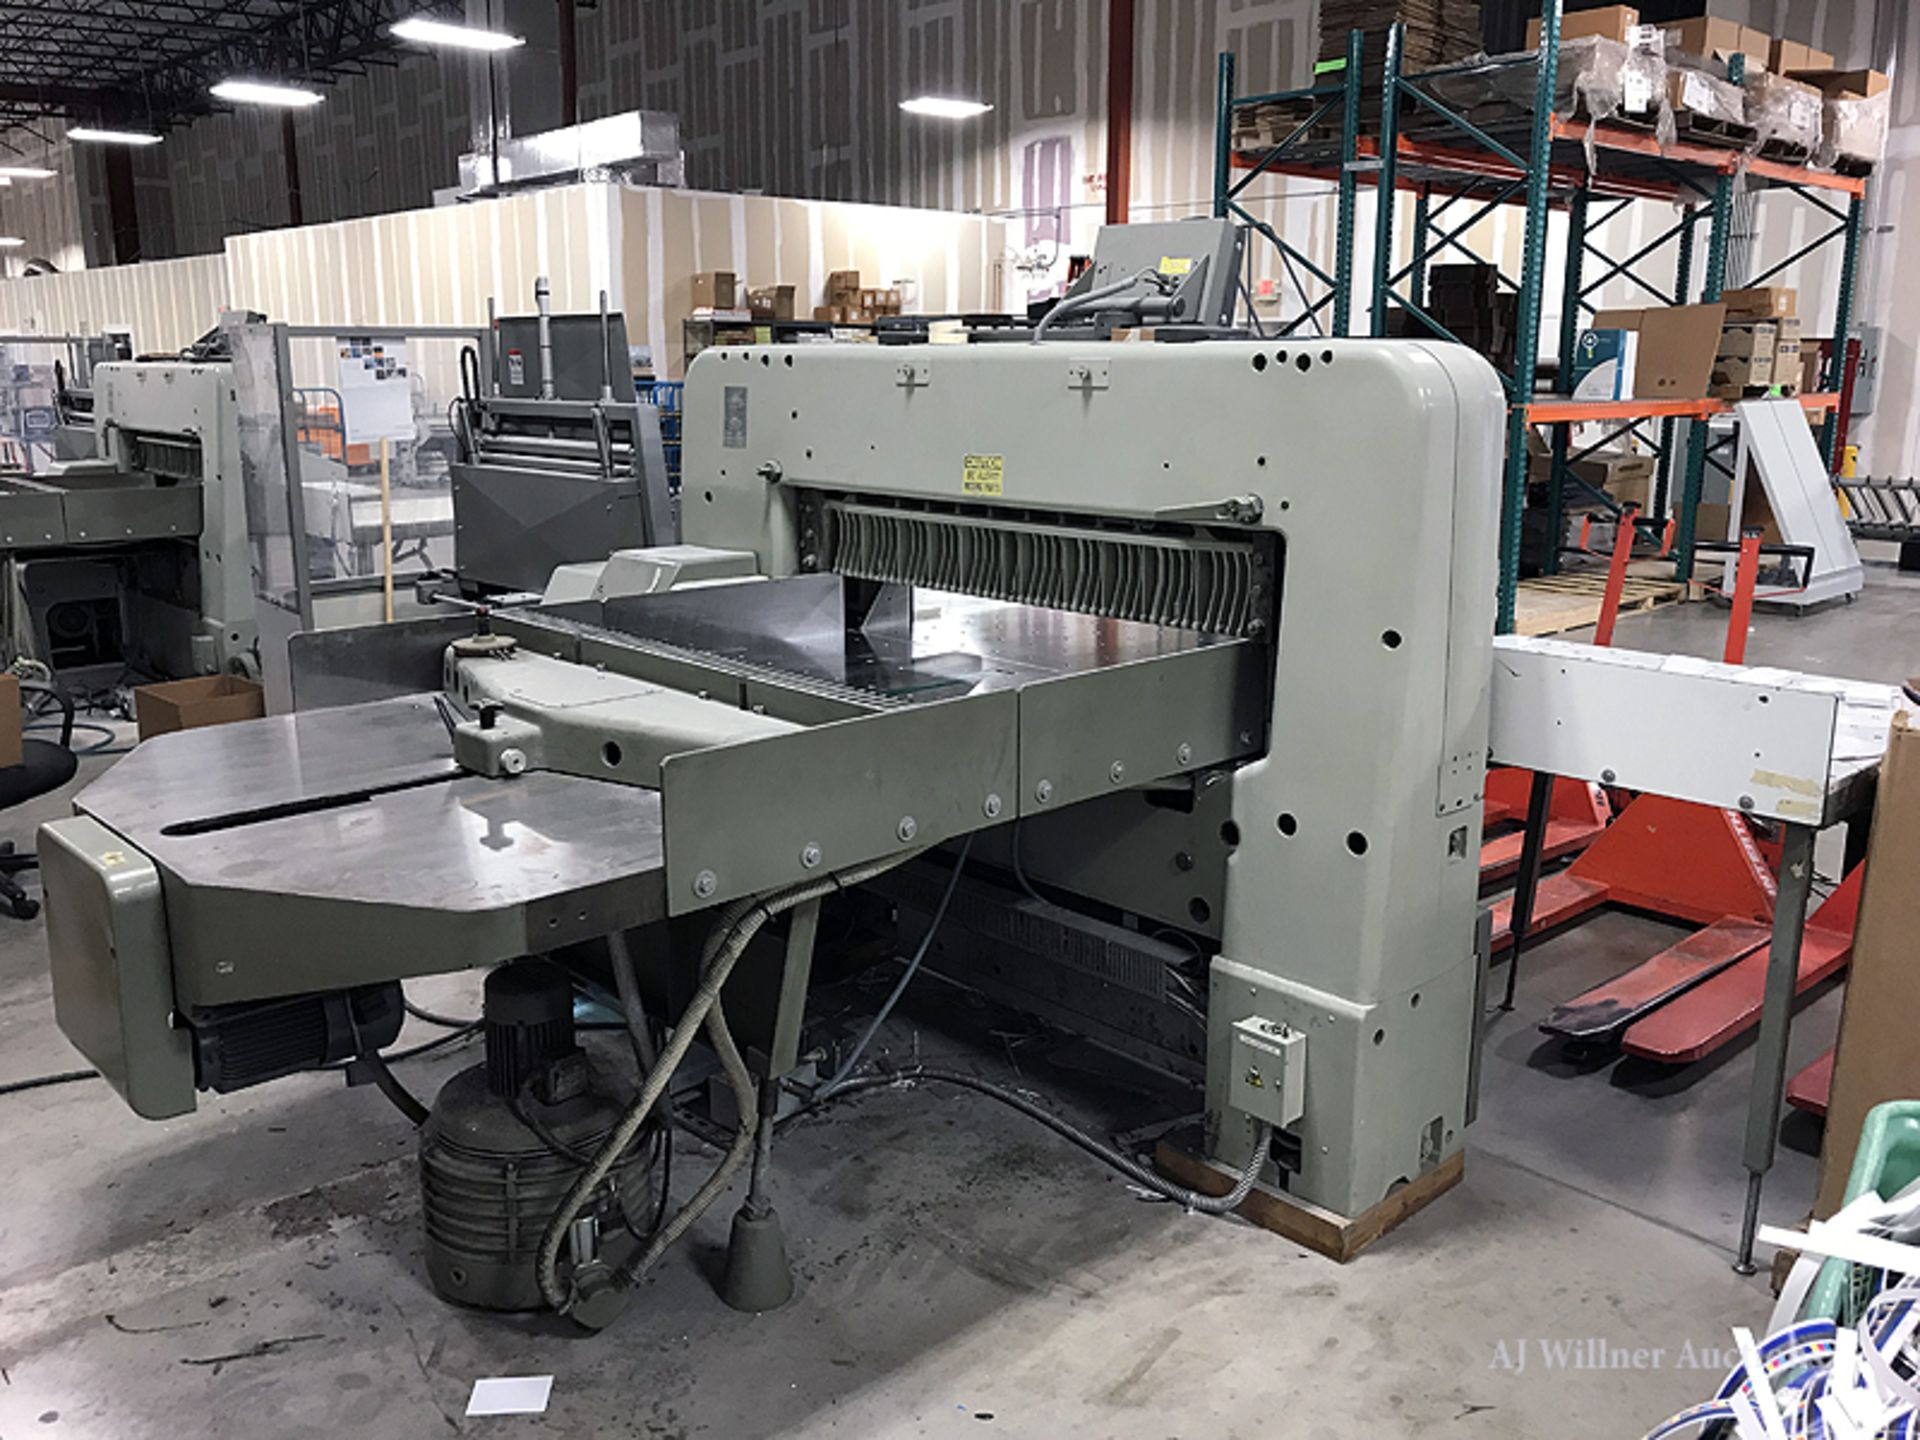 Lot 1 - Polar Mohr 137 EMC Paper Cutter